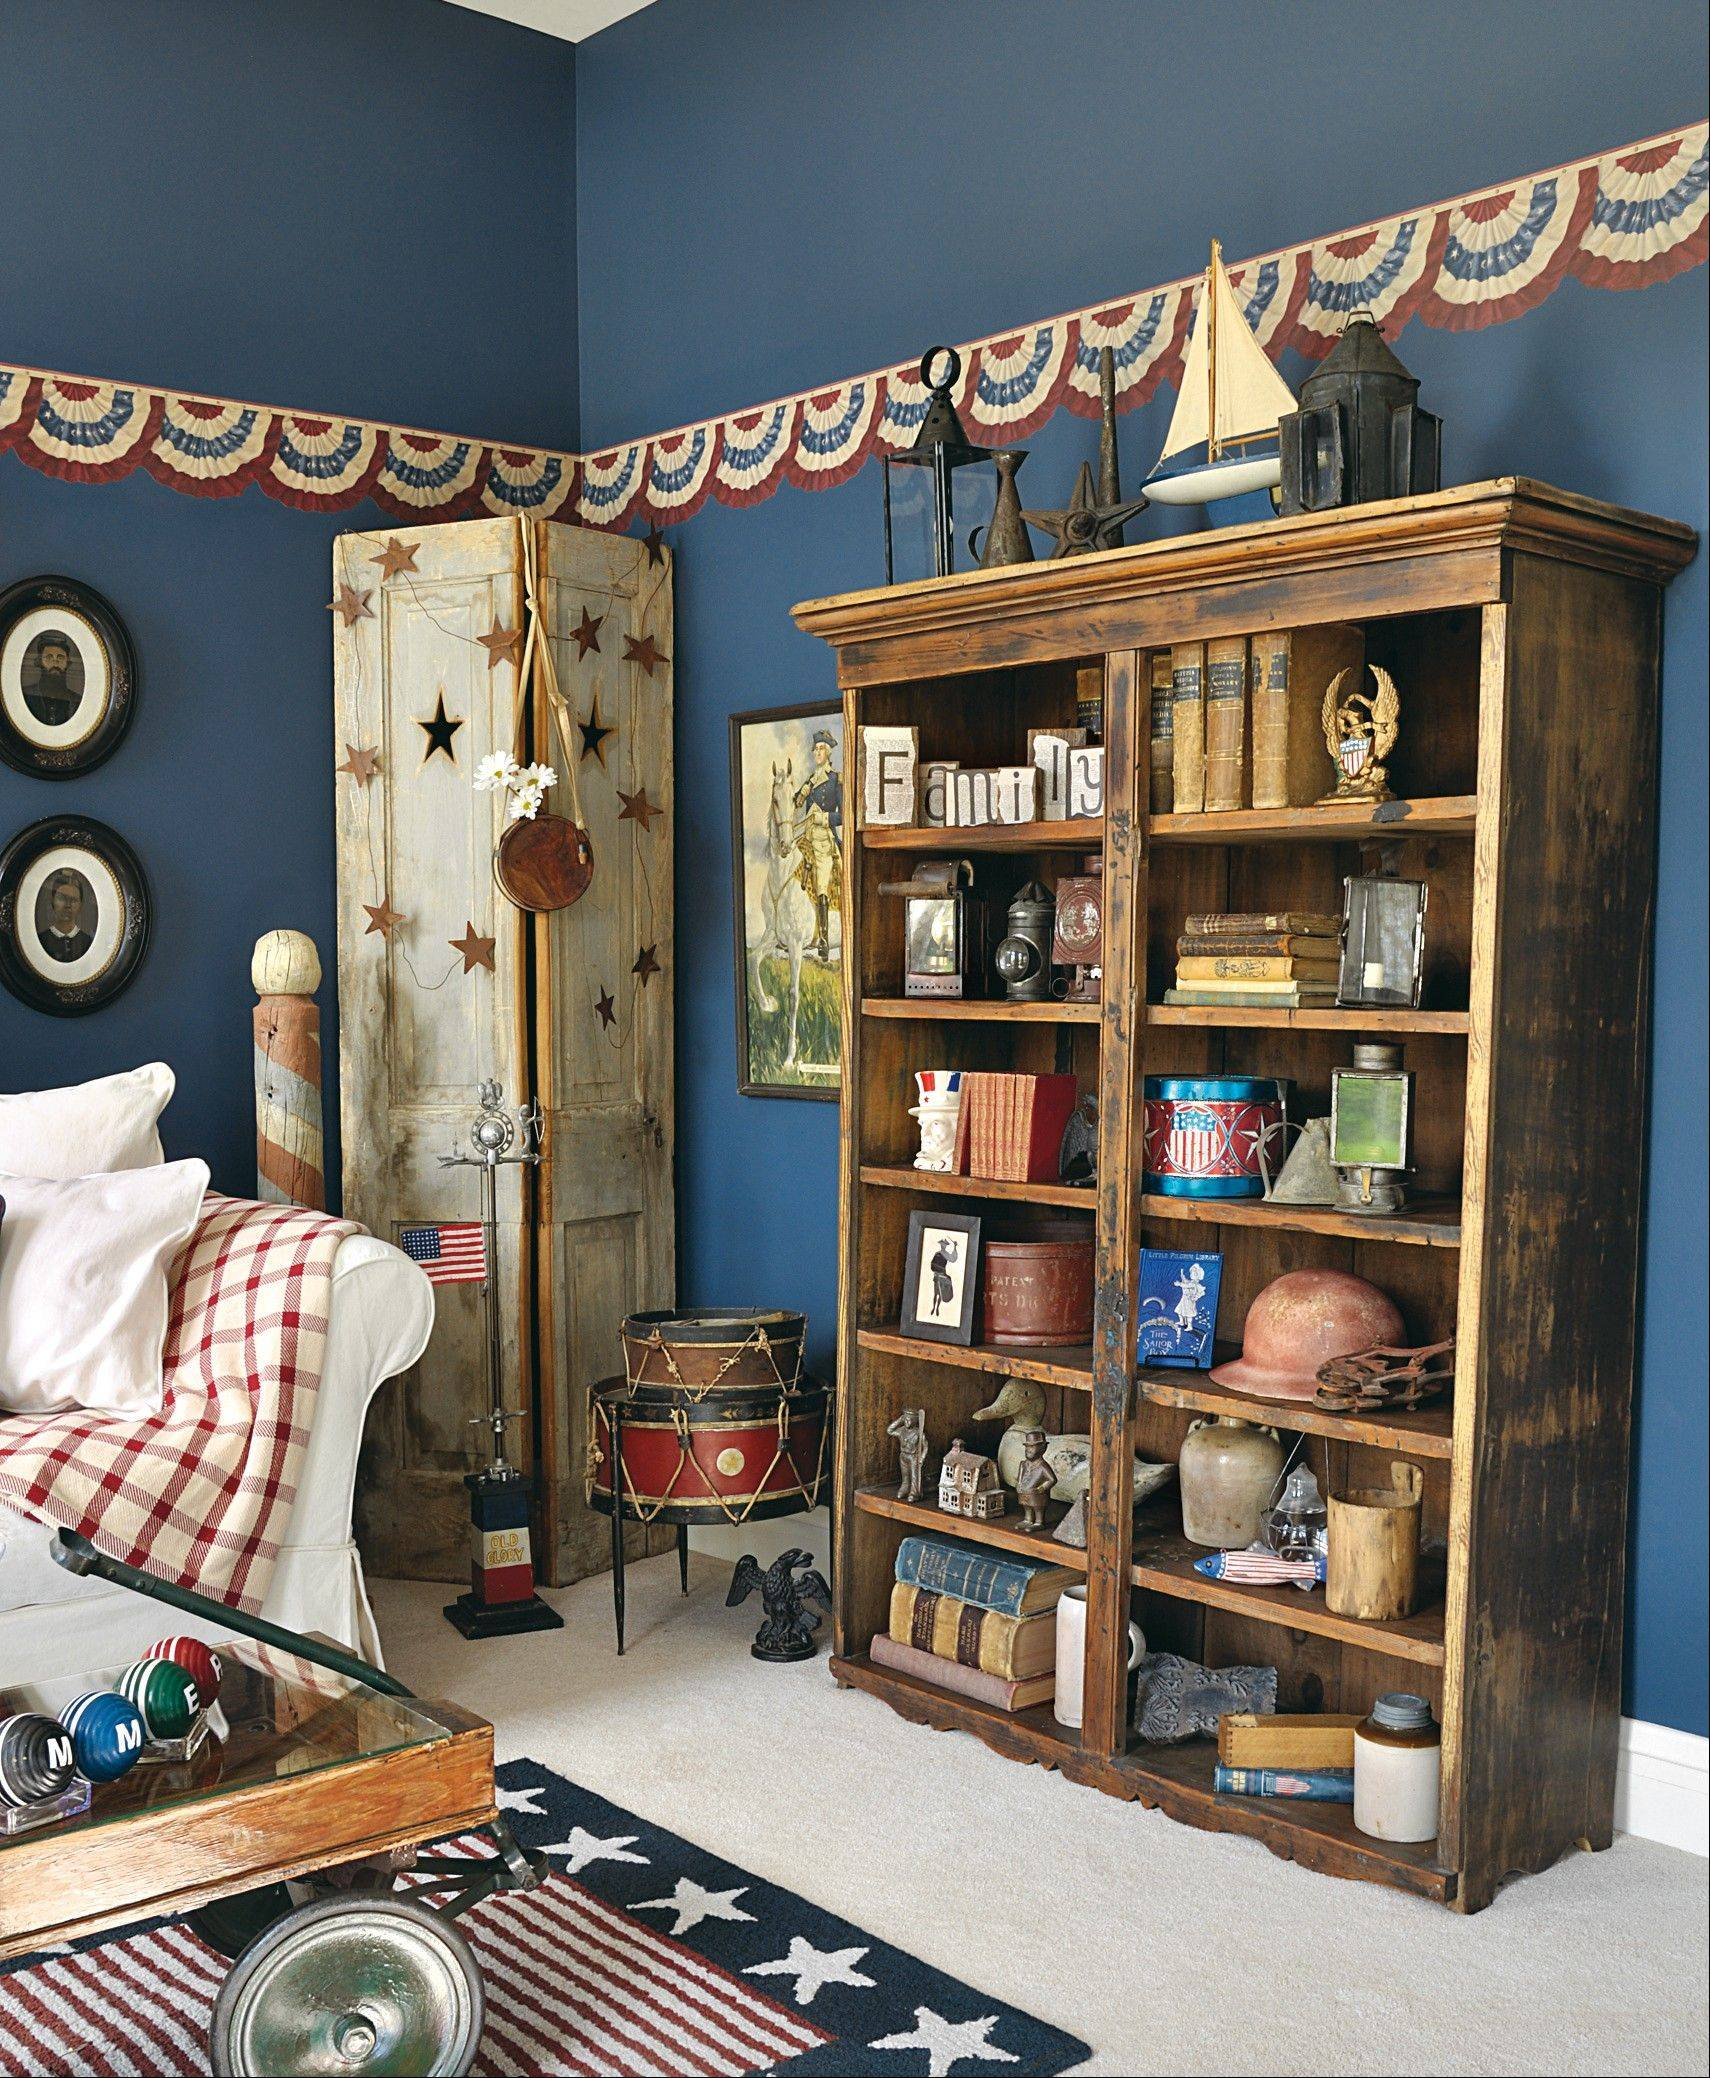 BOOKCASE IN POINT: Look for tips 16-18 to learn how to use bifold doors, a bookcase and accessories to change up your decor.